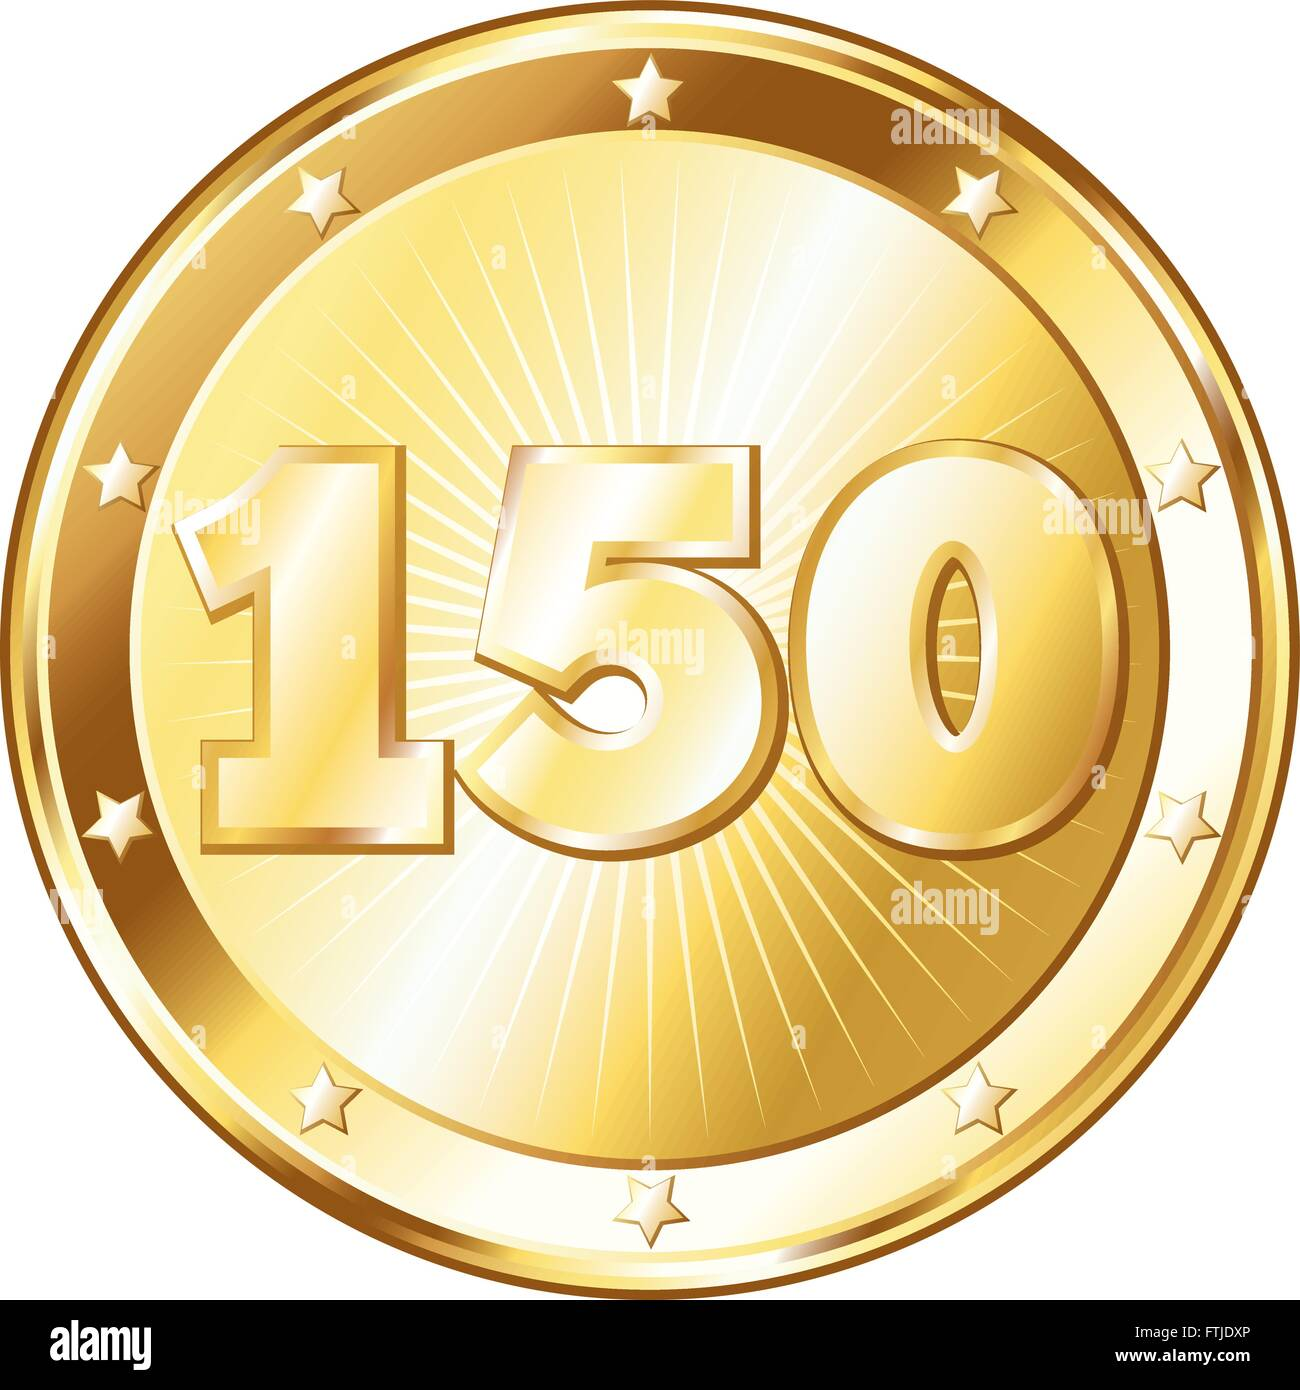 Round circle shaped metal badge / seal of approval in a gold look and the number one hundred fifty. - Stock Vector